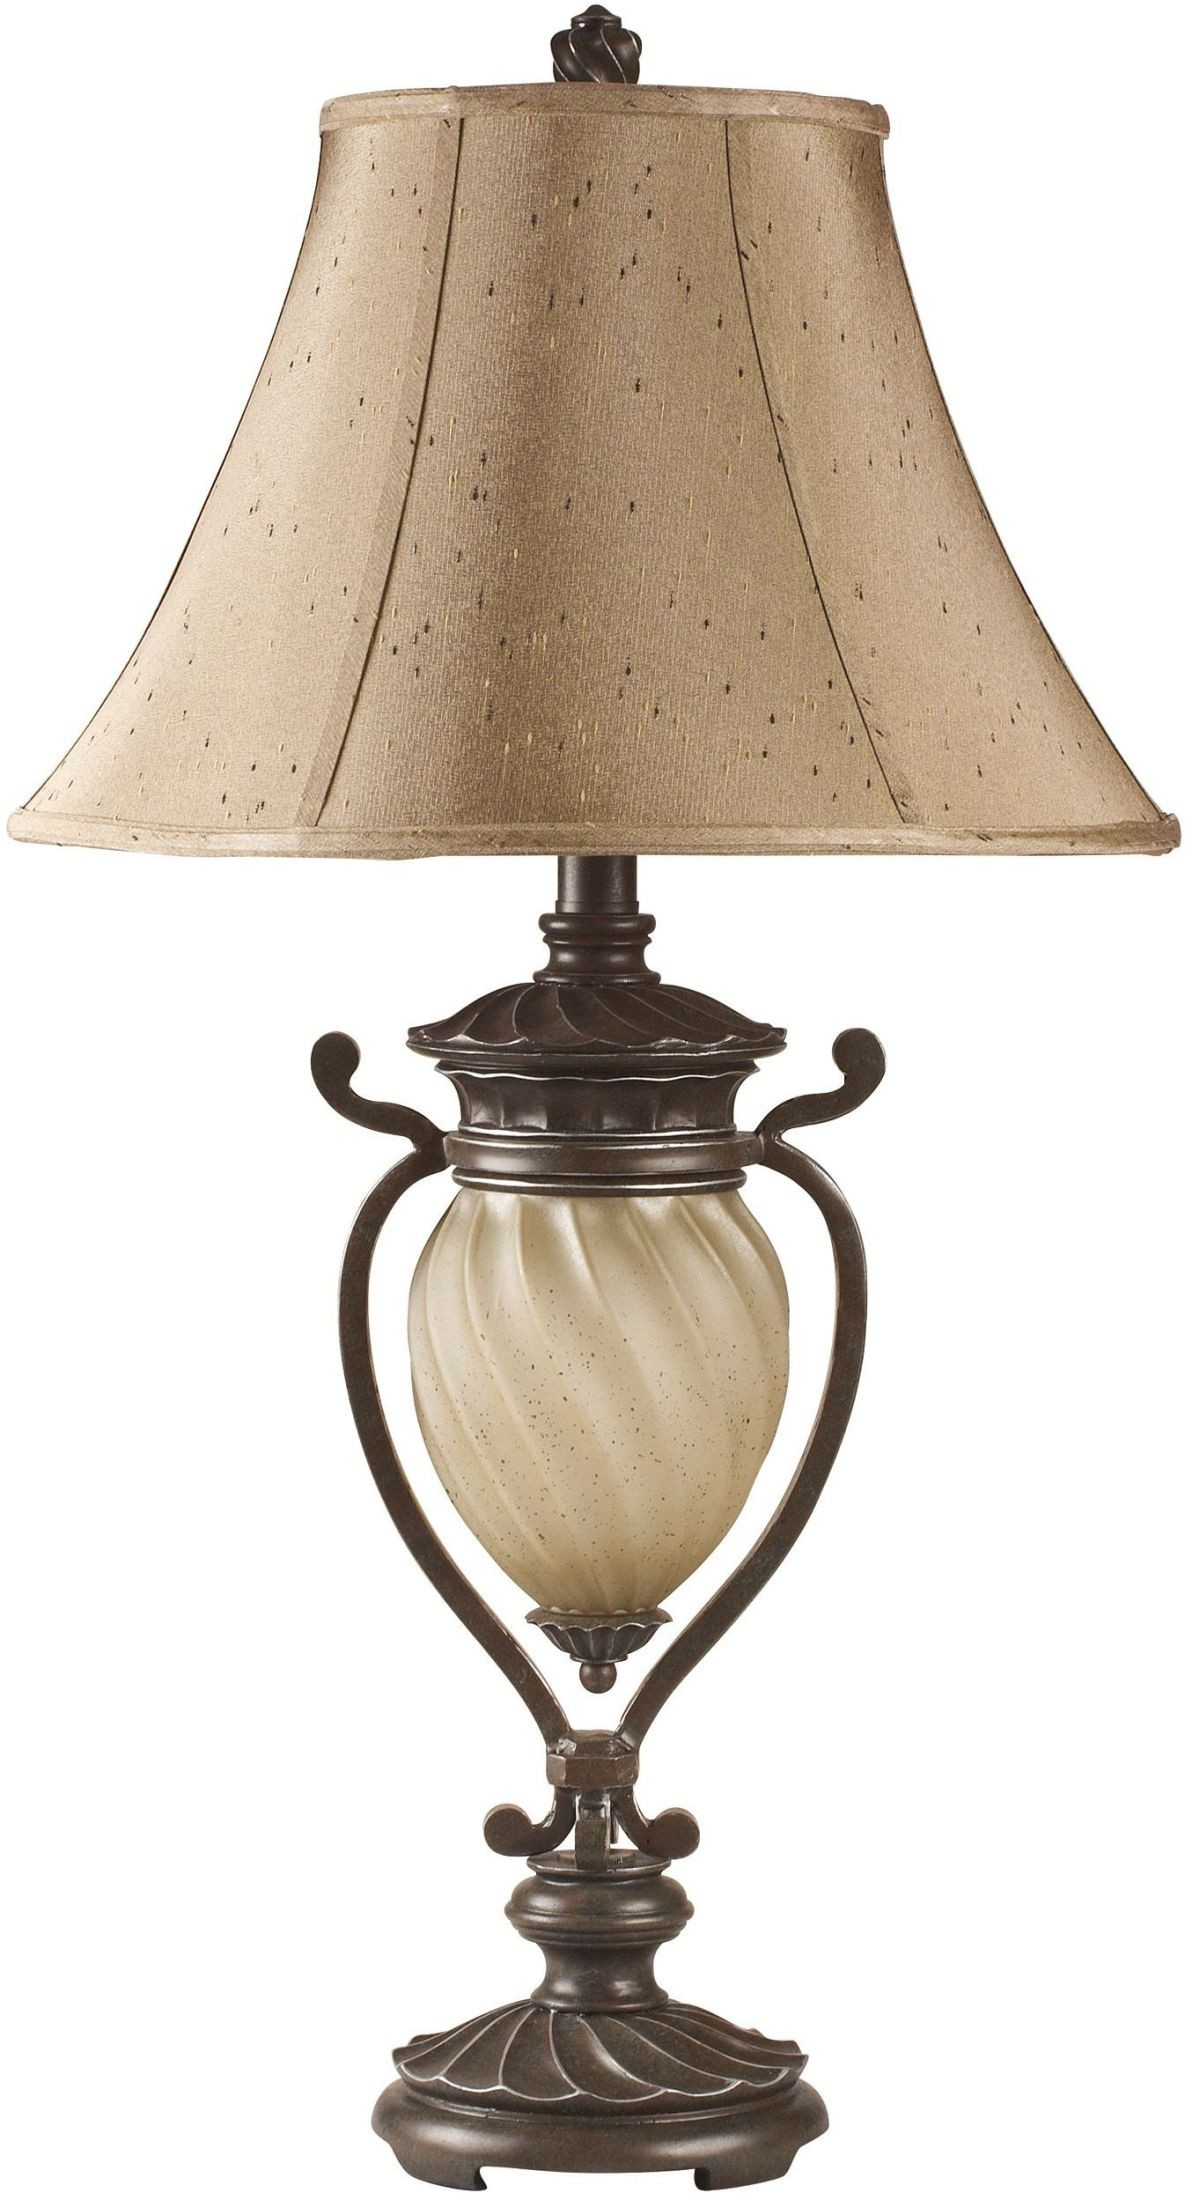 Gavivi Table Lamp Set Of 2 From Ashley L531914 Coleman